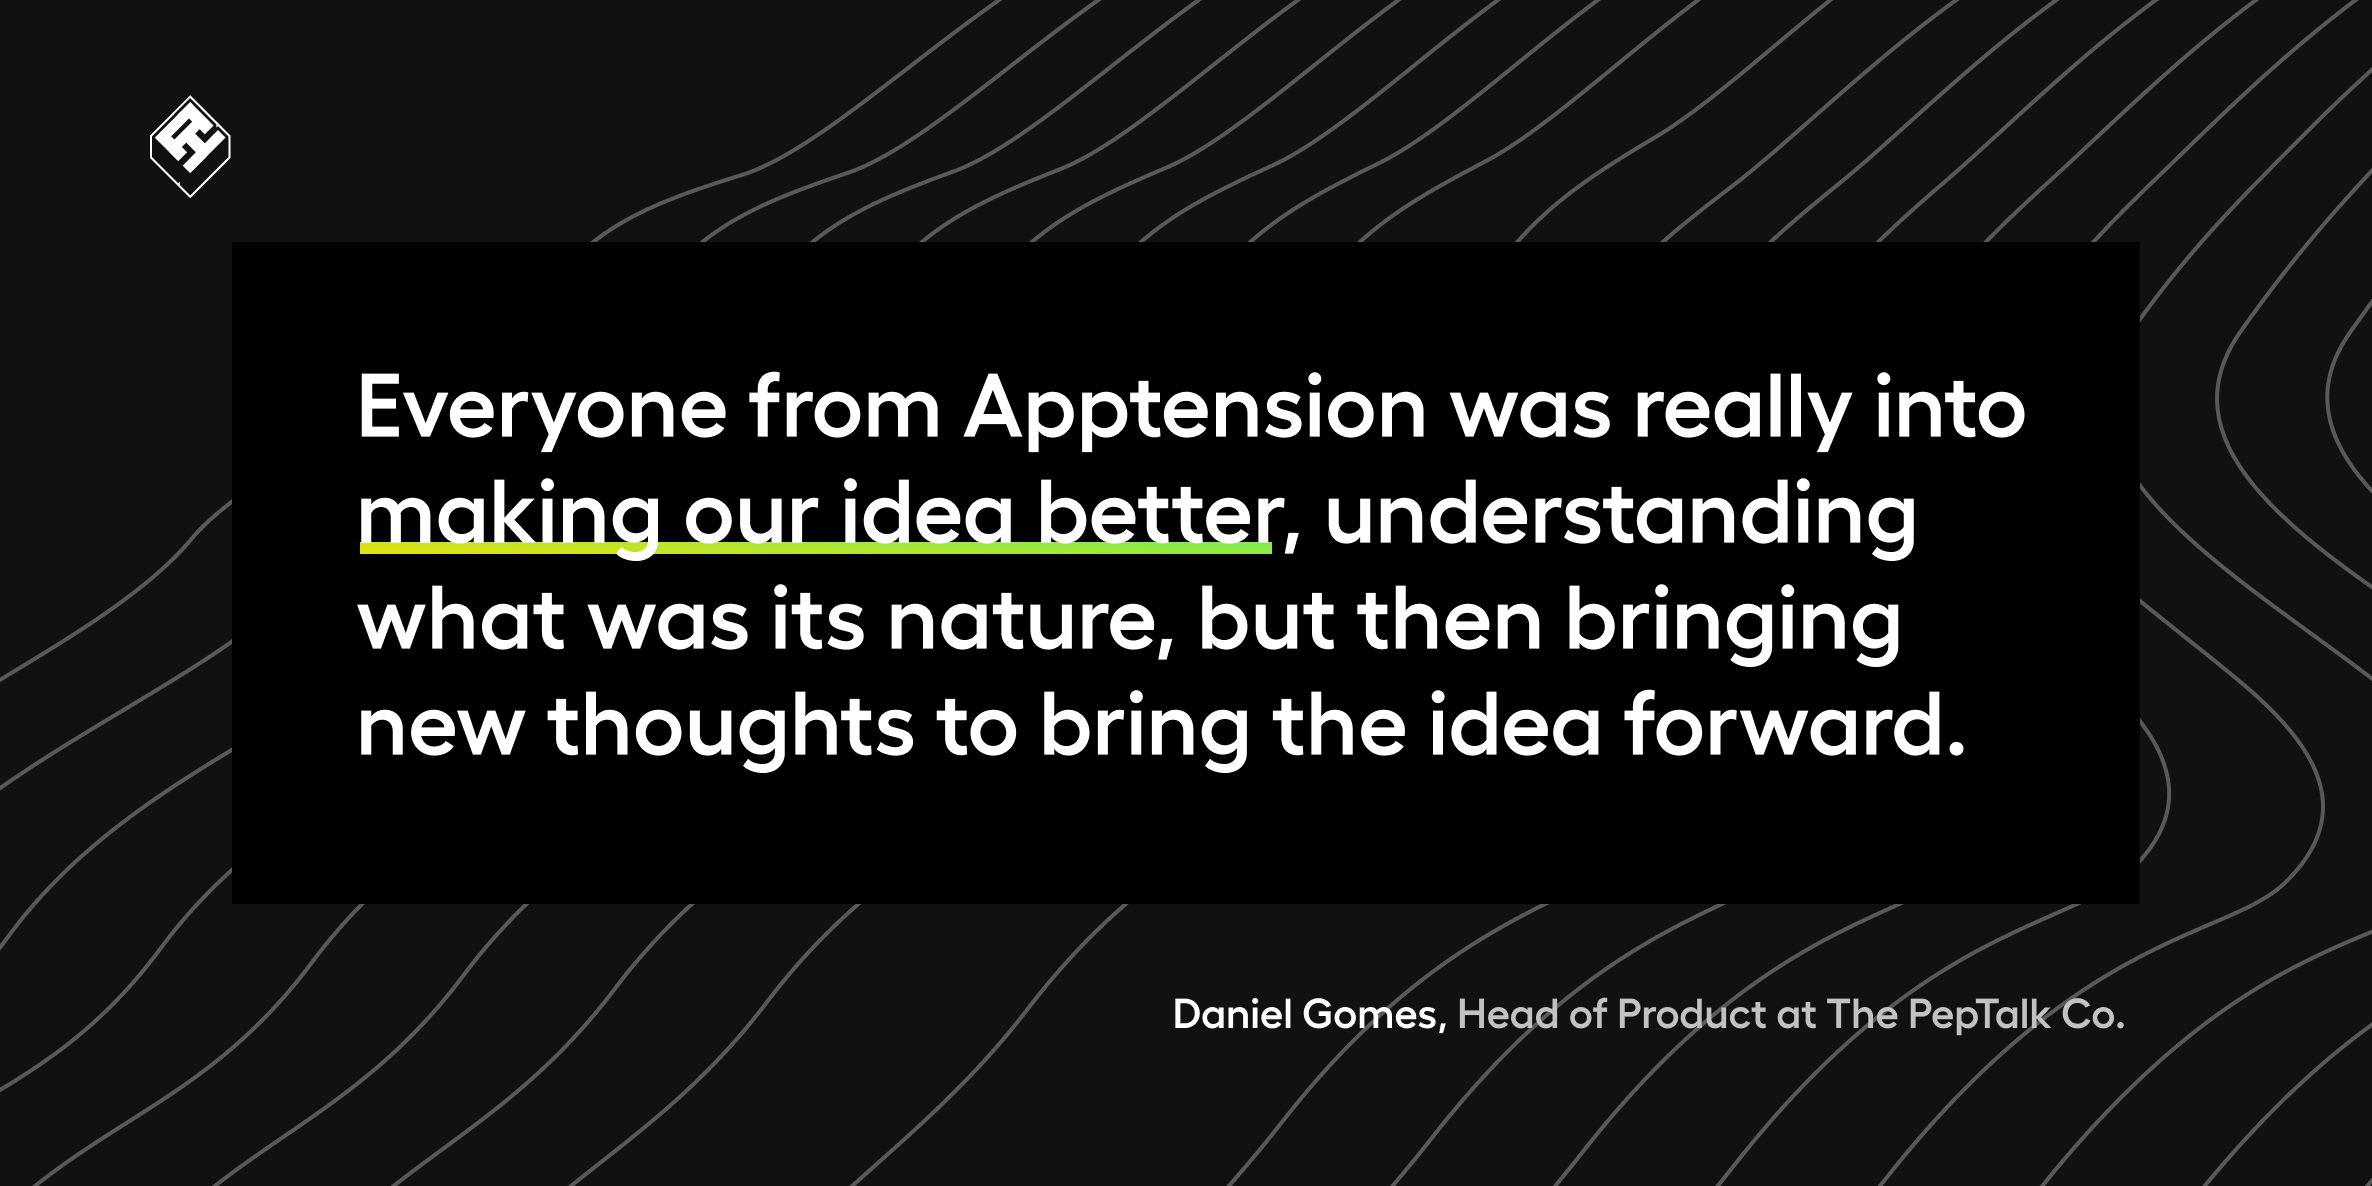 Testimonial about Apptension Web Application from Peptalk